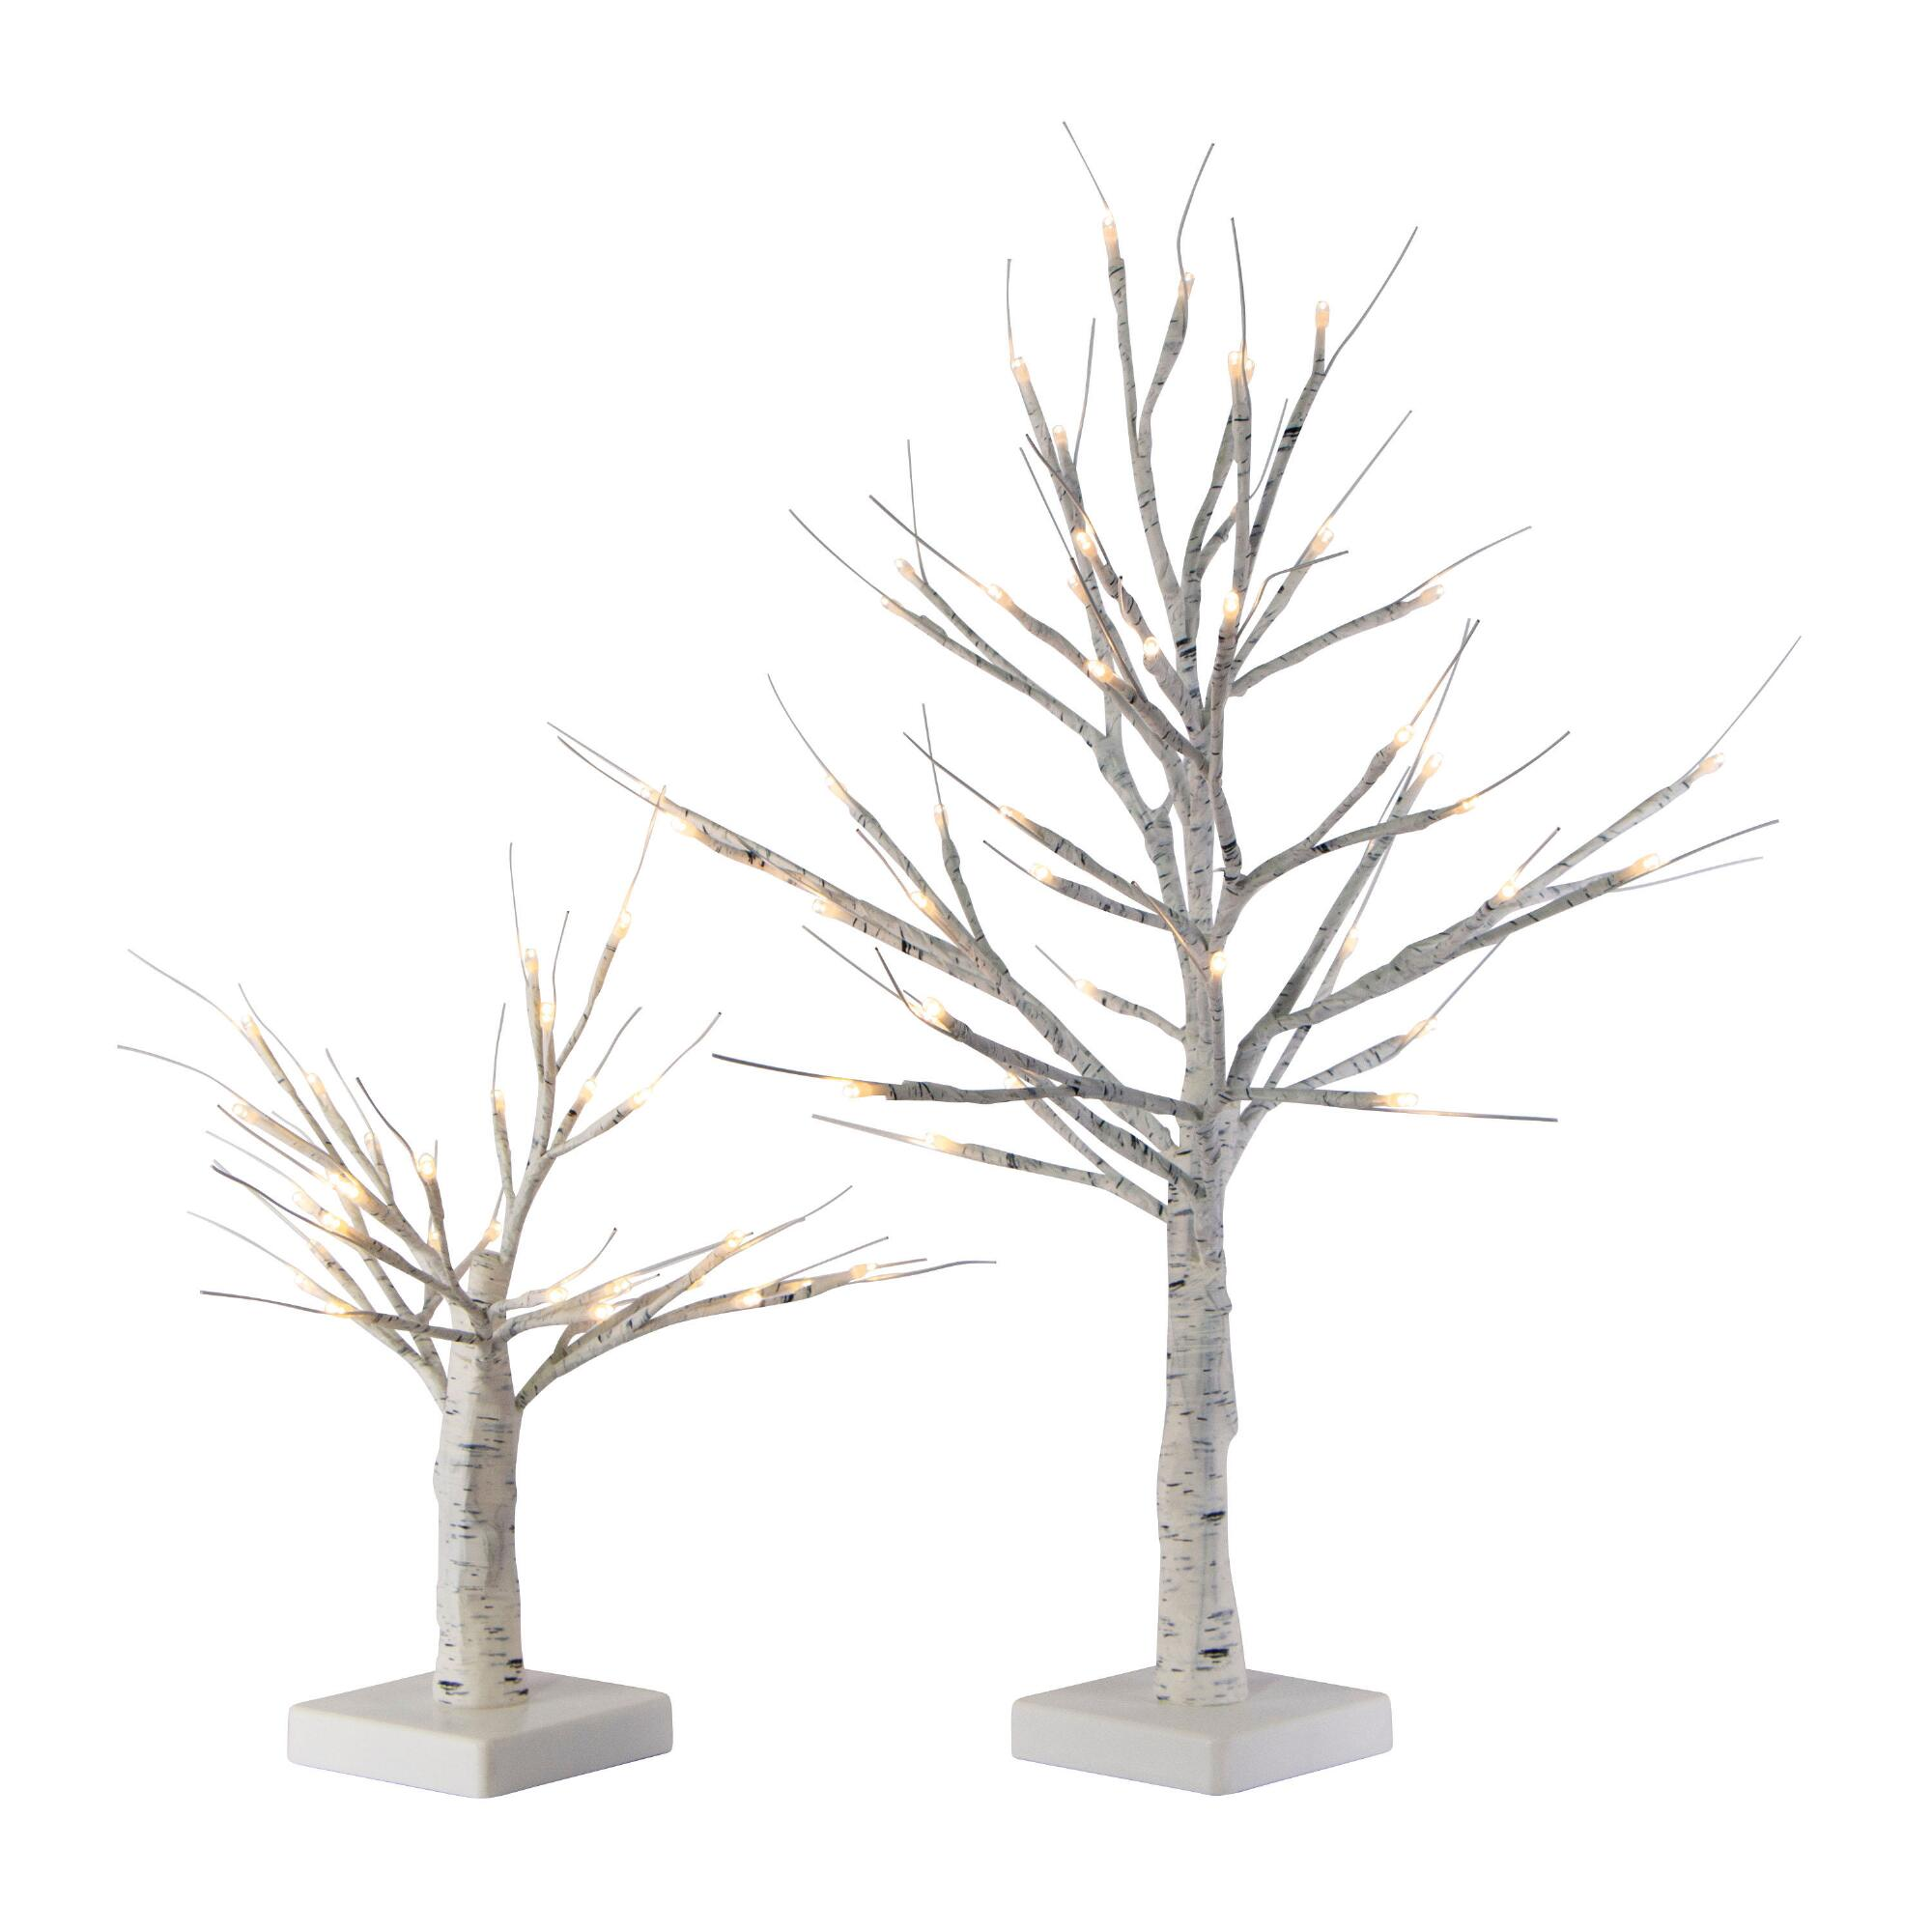 White Birch Micro Led Battery Operated Tree Decor $16.99-$24.99